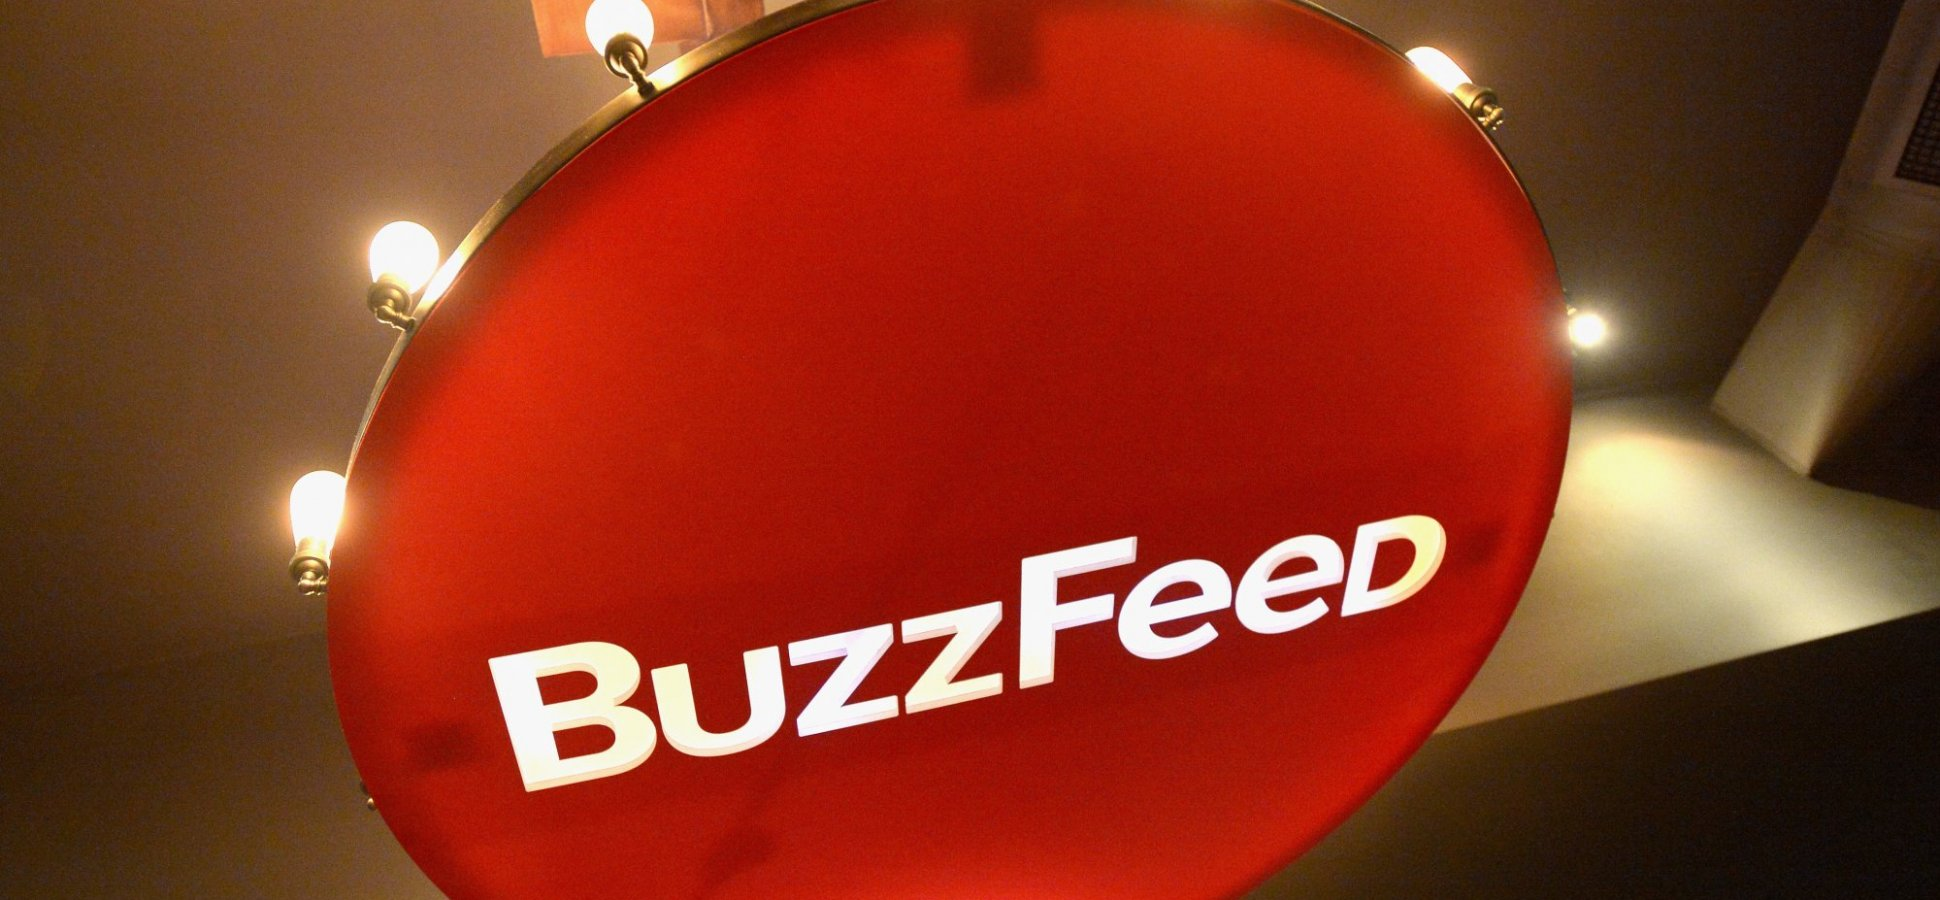 Mashable and BuzzFeed Are More Bad News for Online Media